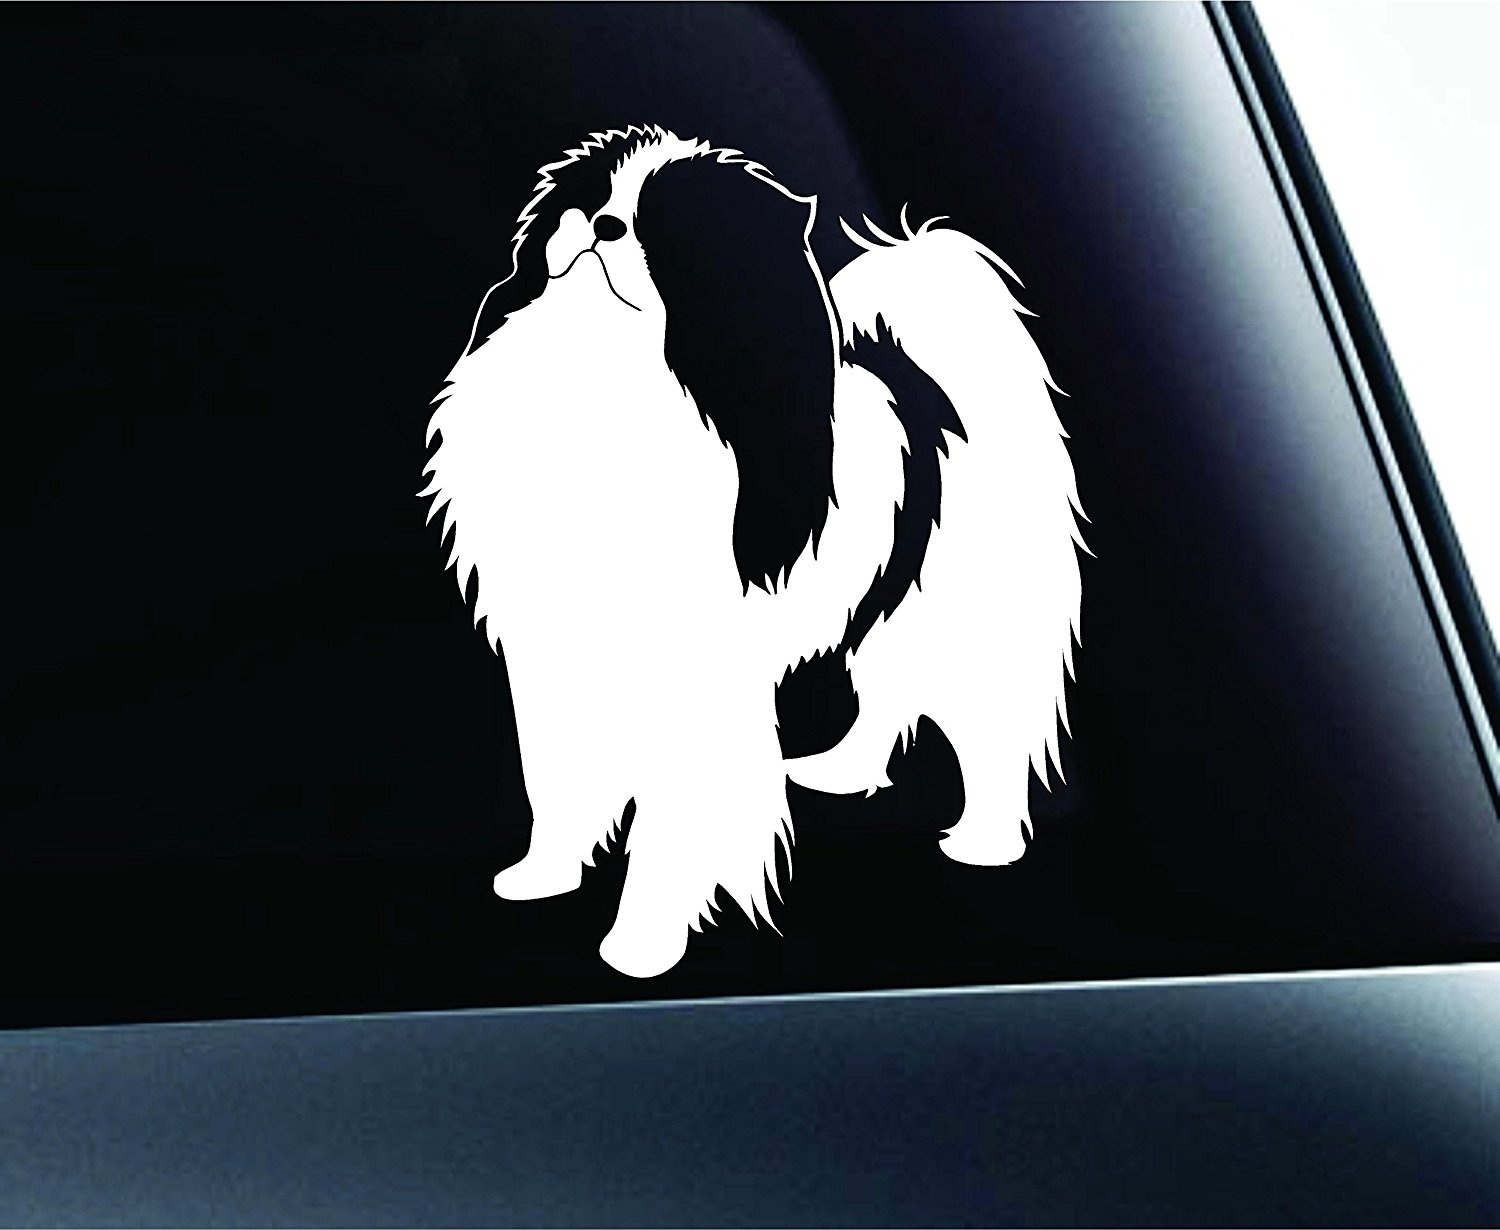 Japanese Chin Dog Symbol Decal Paw Print Dog Puppy Pet Family Breed Love Sticker Window 15cm image